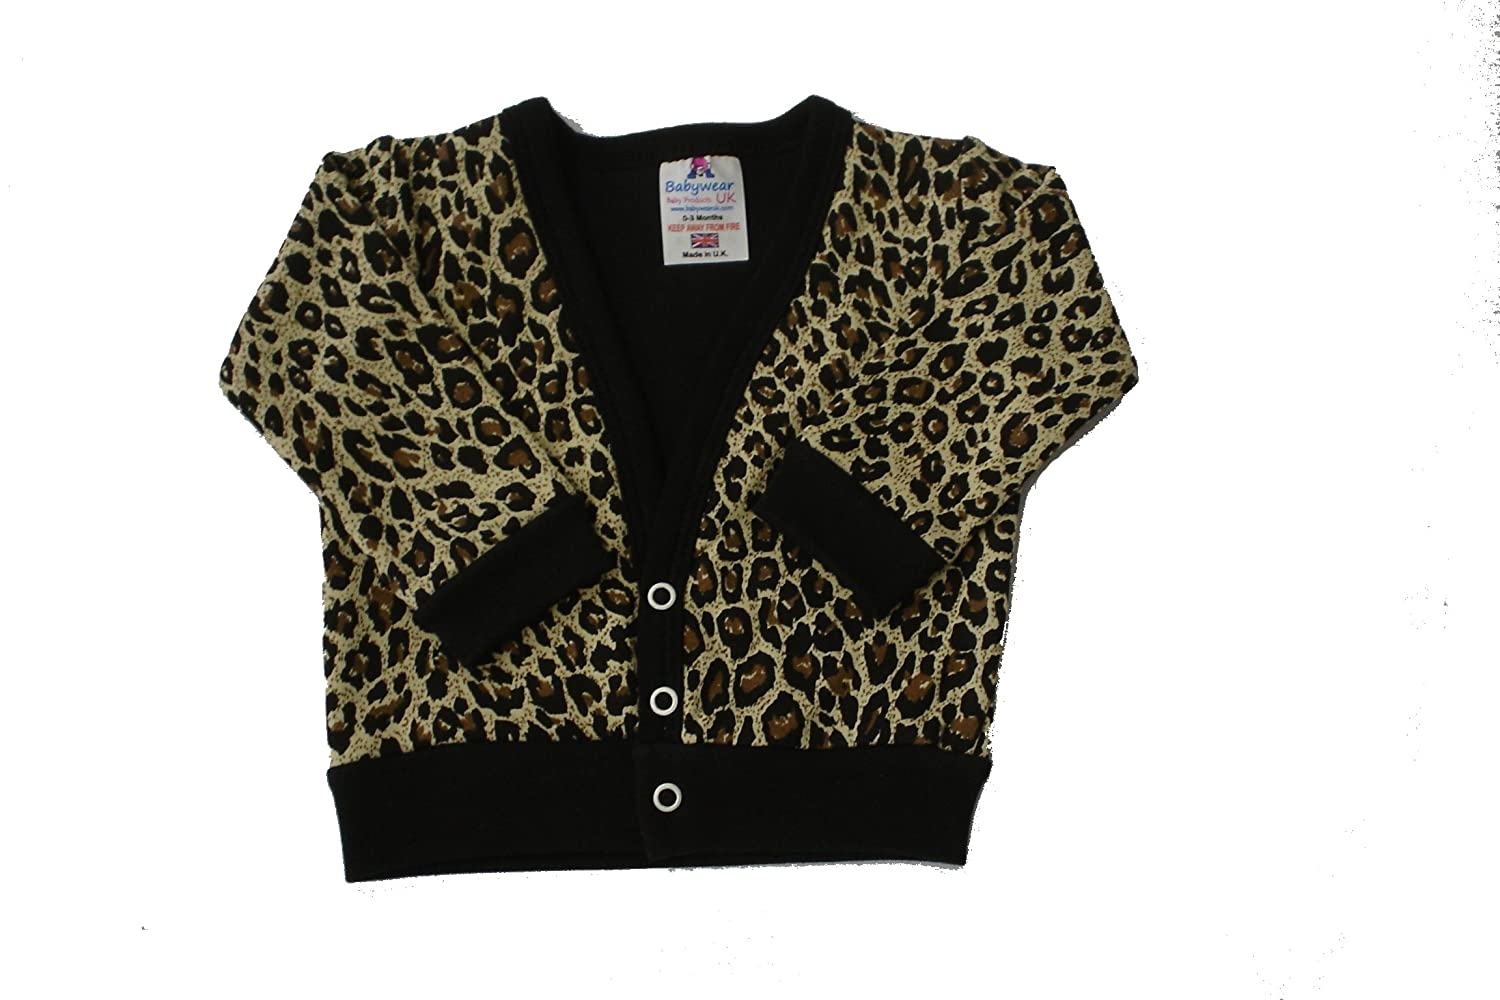 Amazon.com: Babywearuk British Made Leopard Print Baby Cardigan ...